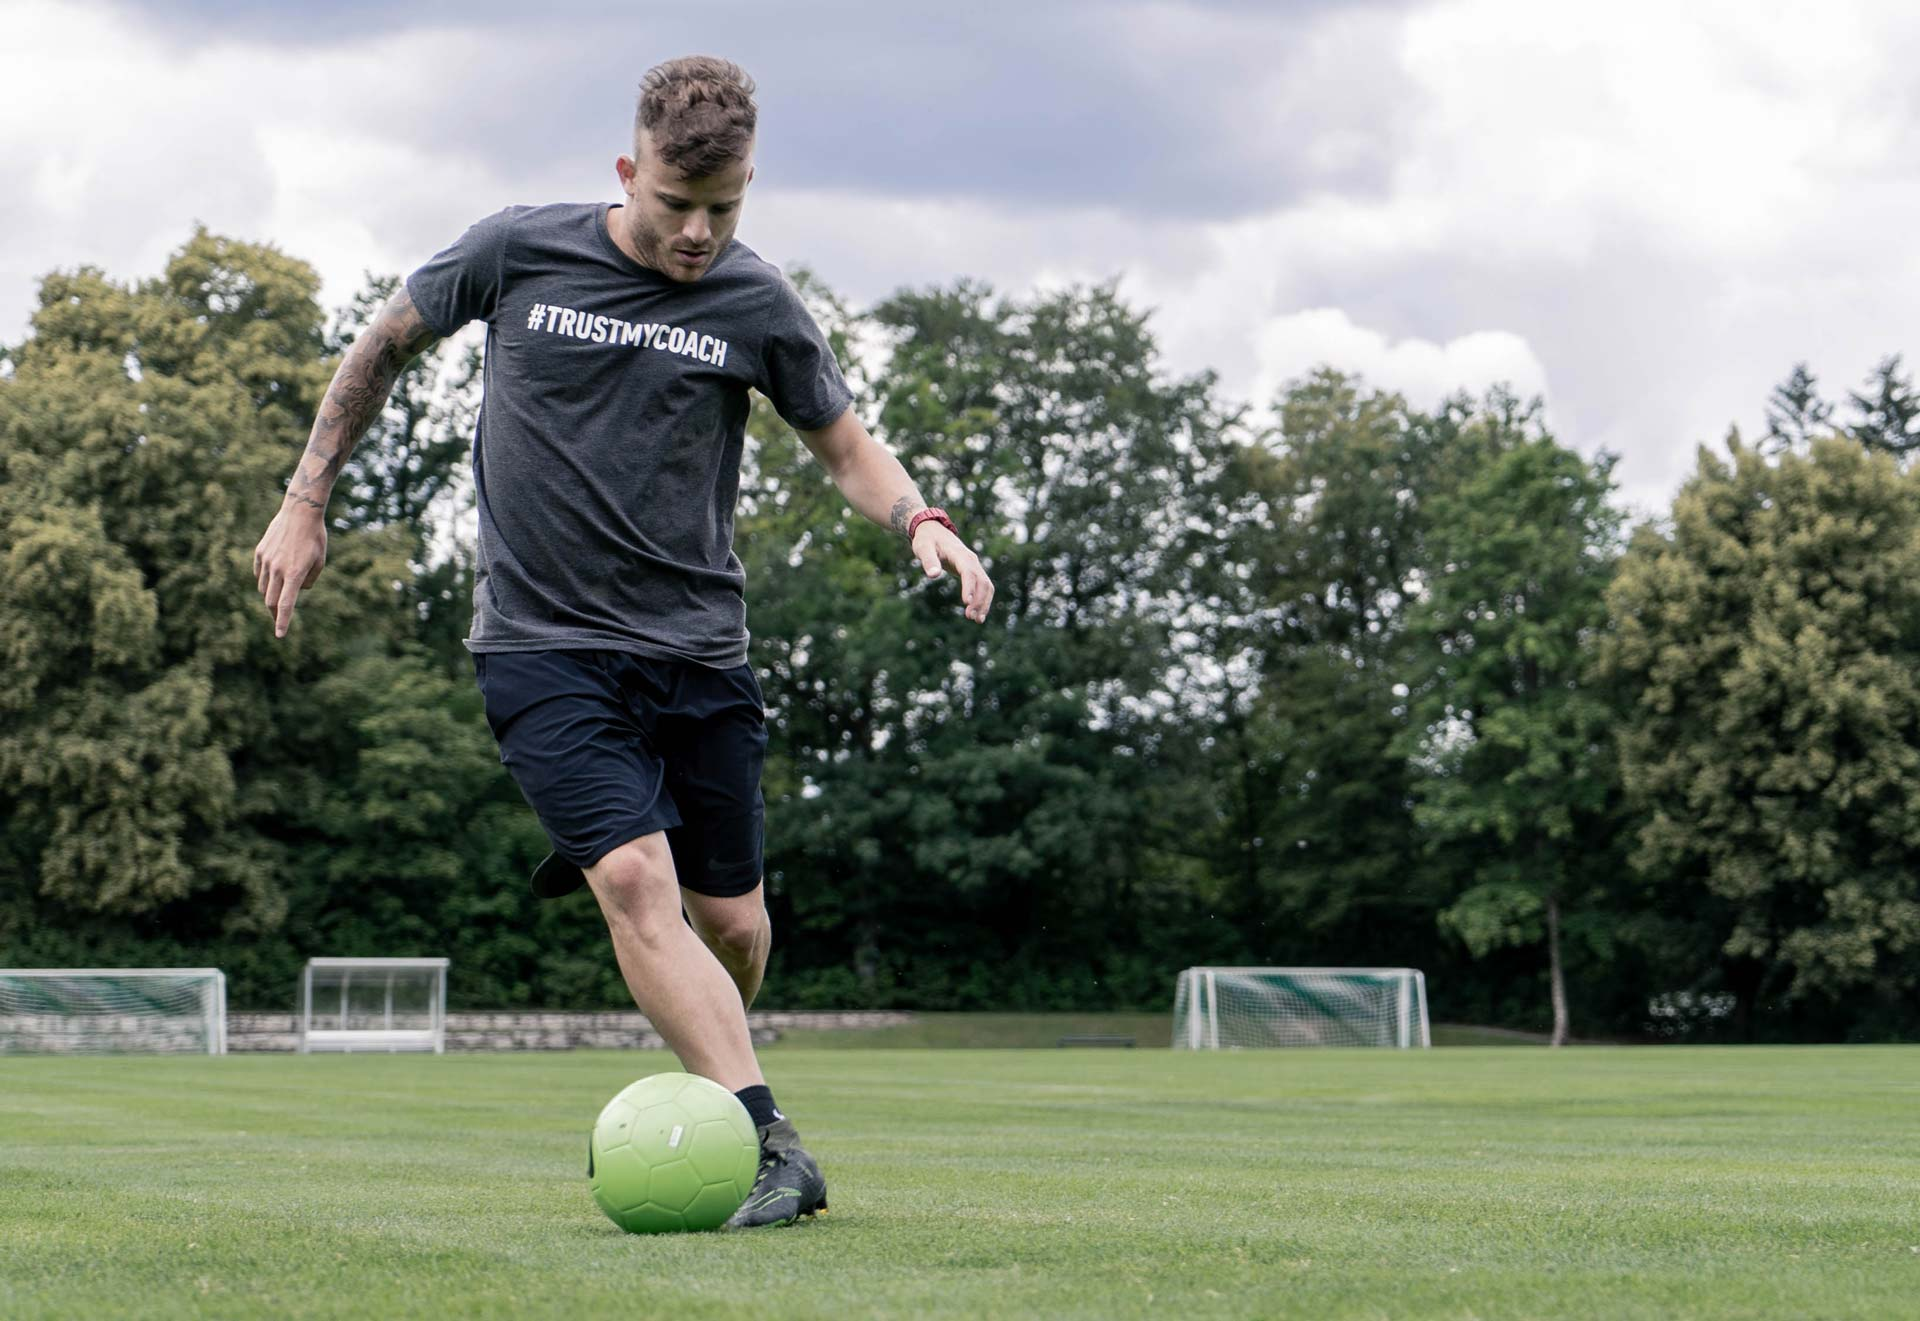 coordination soccer training control the ball your body and the